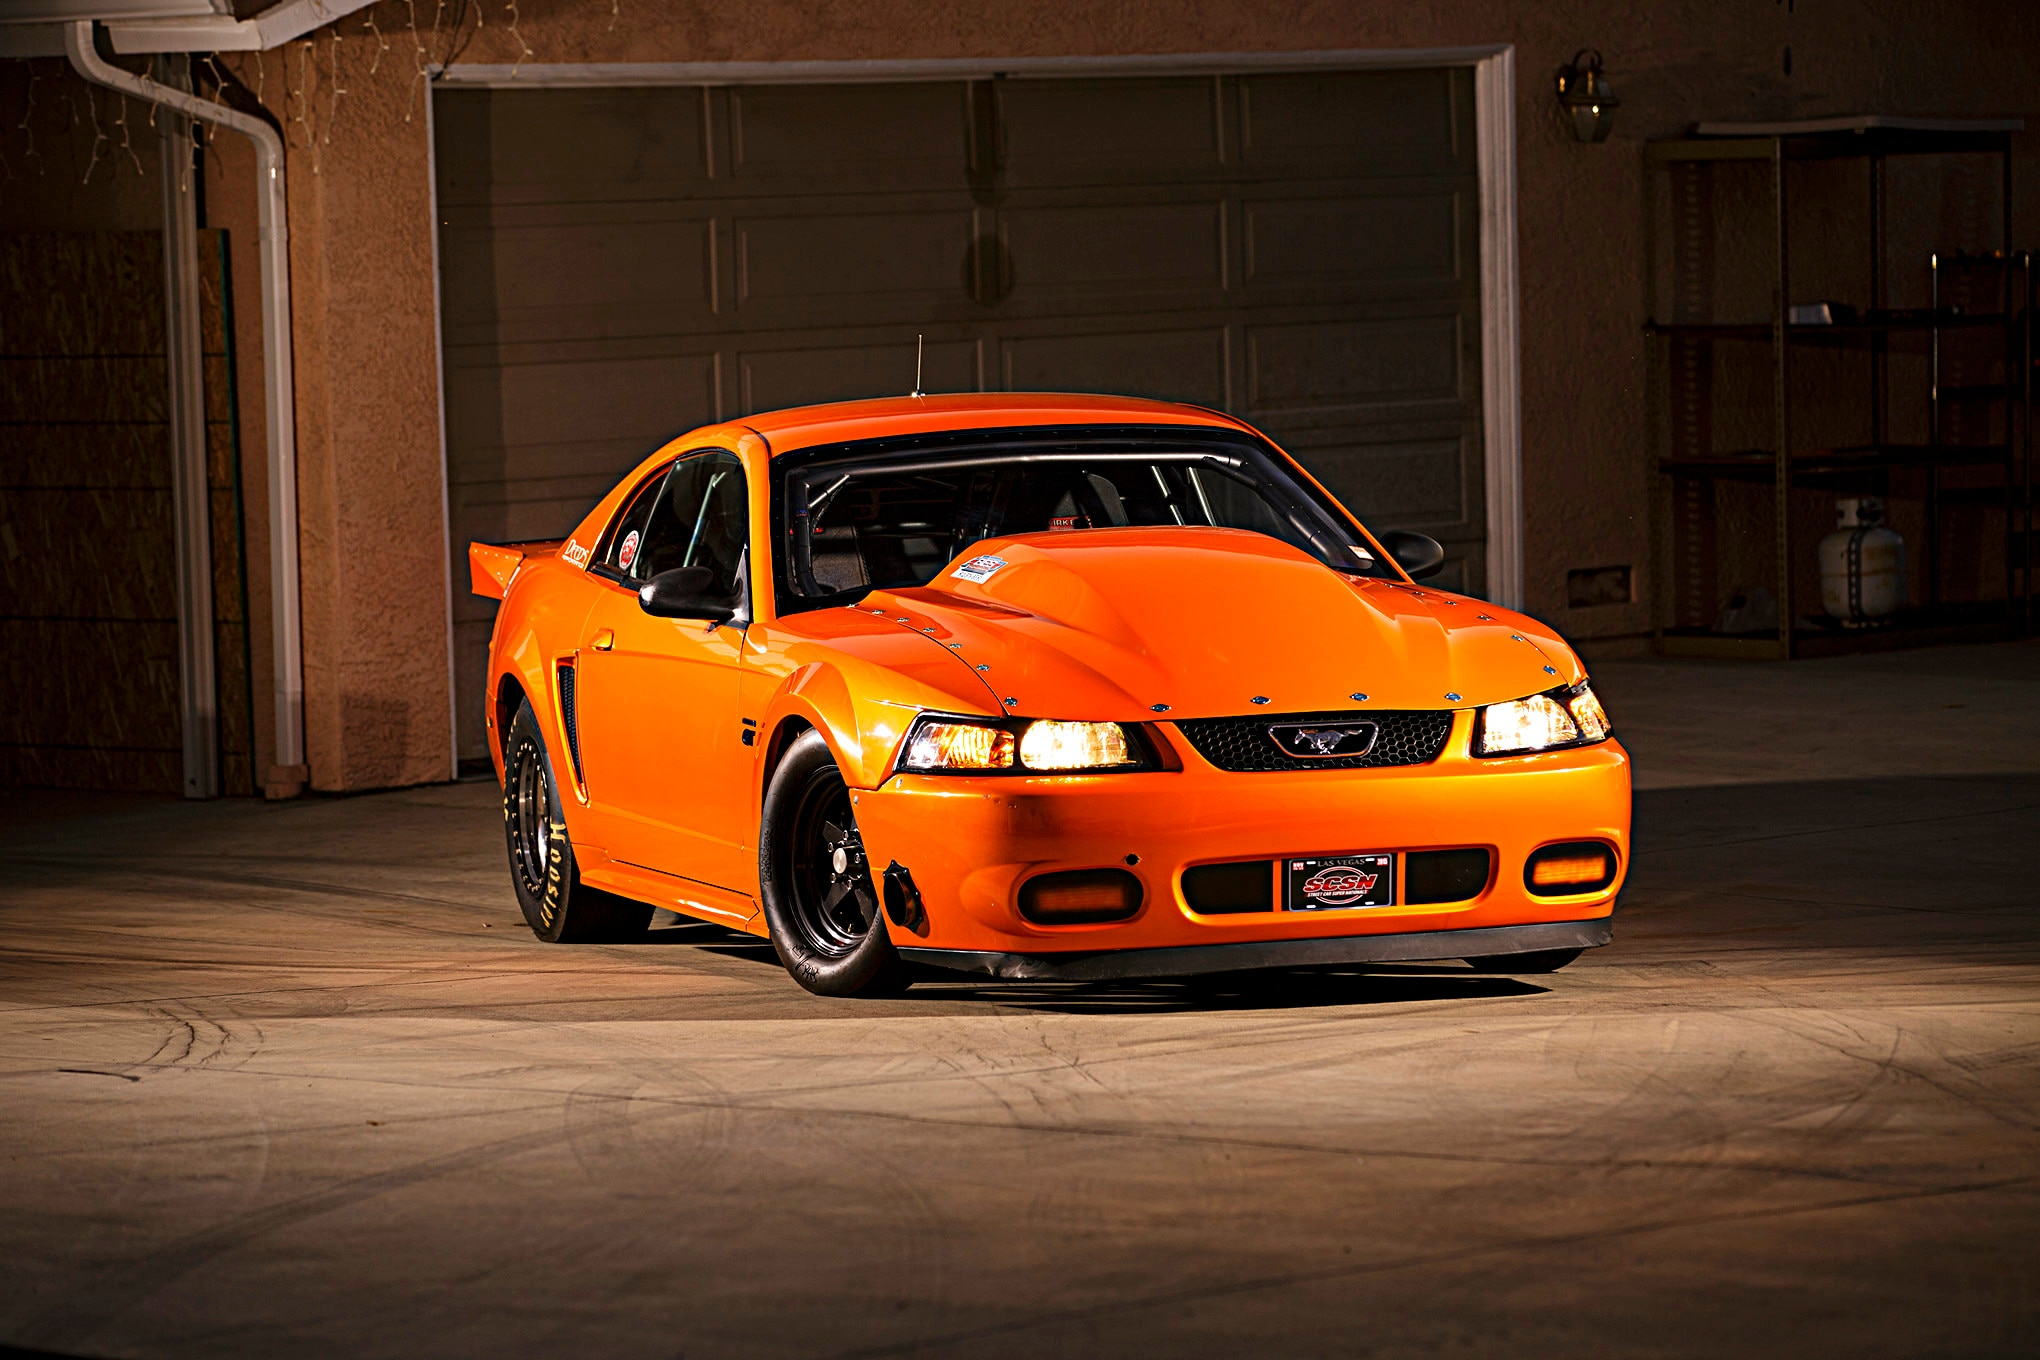 127295689 Edge - New Mustang Photo 90 Orange 2002 This Ford